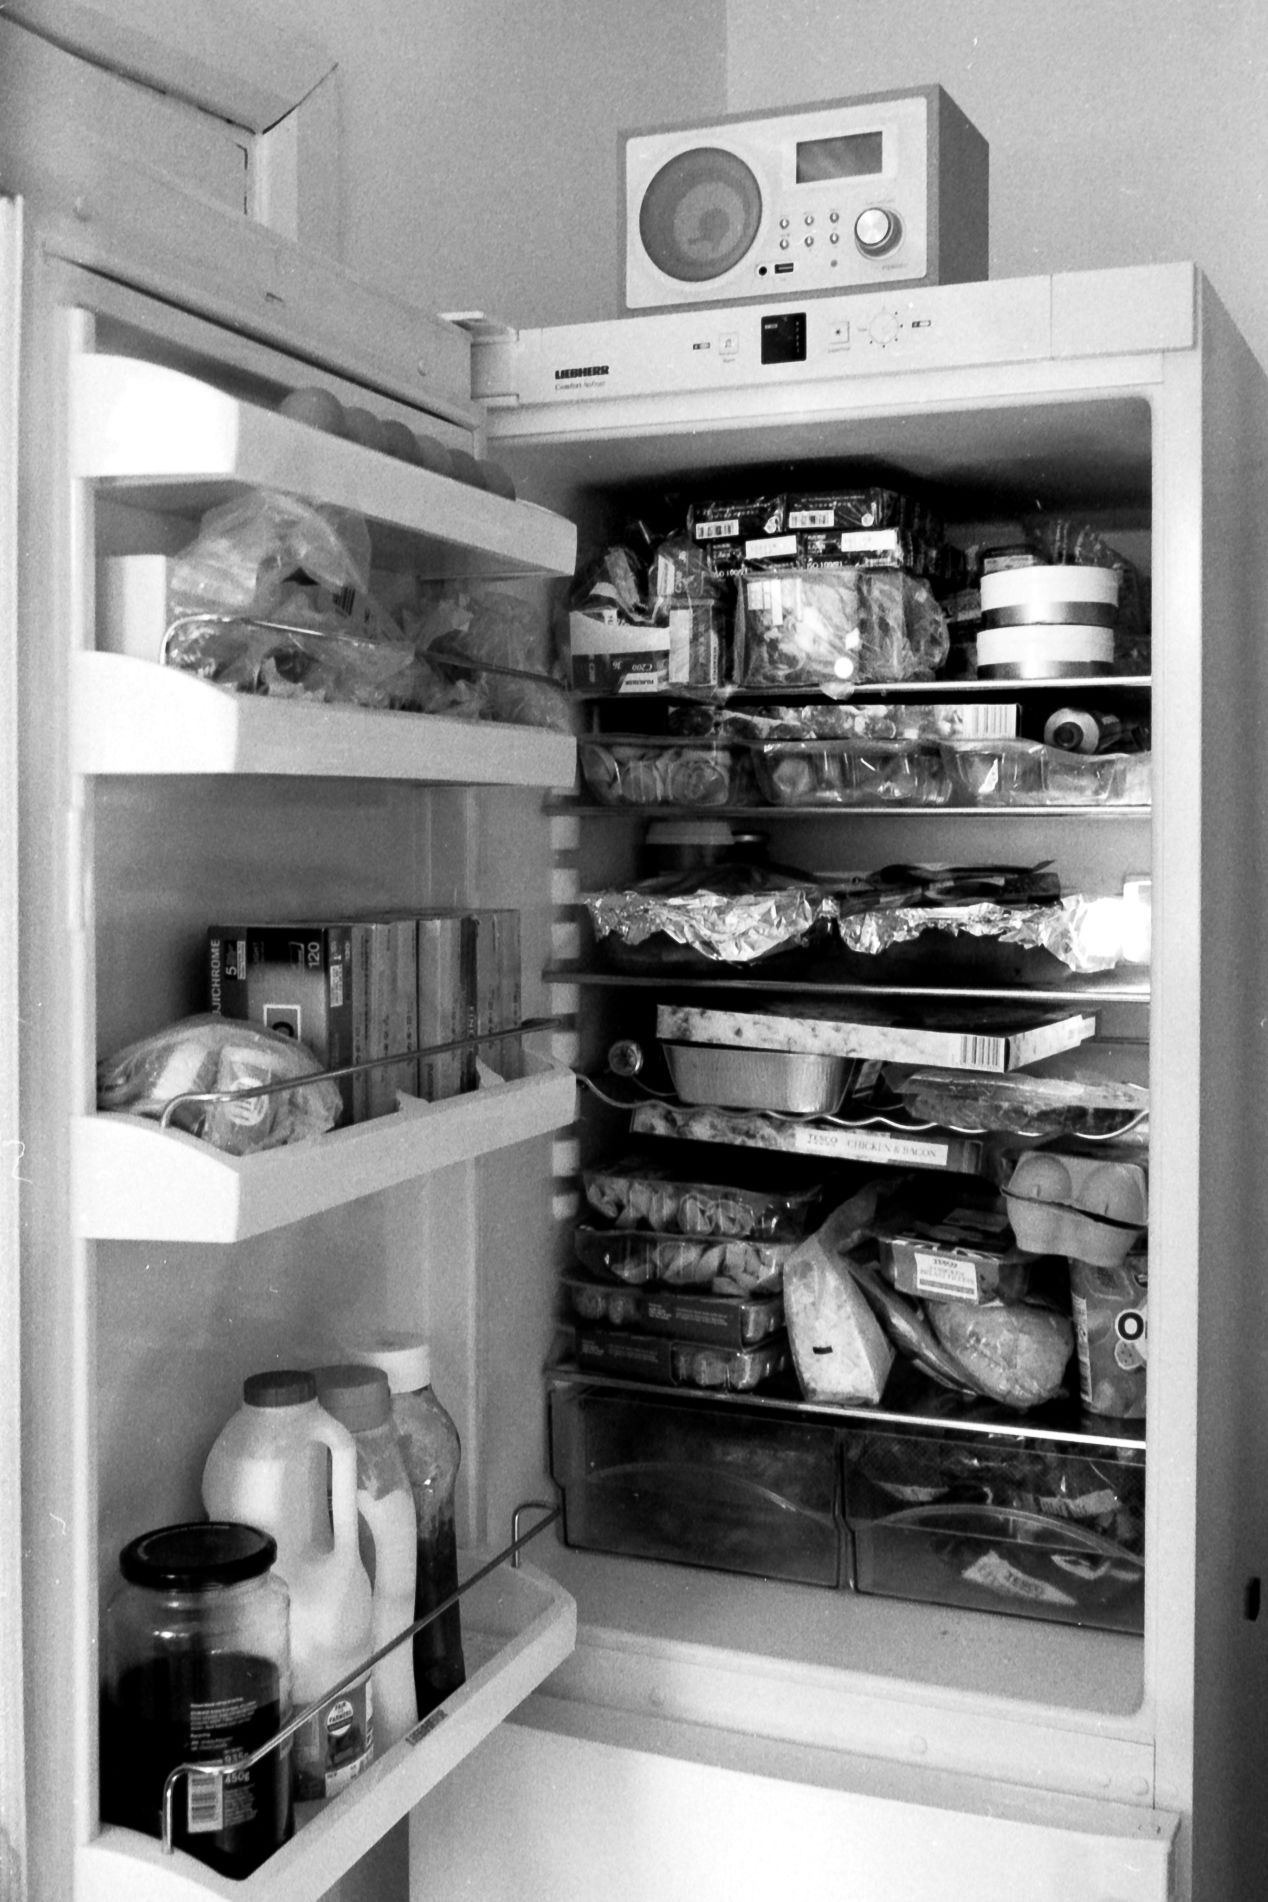 Film in the fridge, April 2020, taken with Olympus IS3000, on Agfa APX400. Developed commercially.